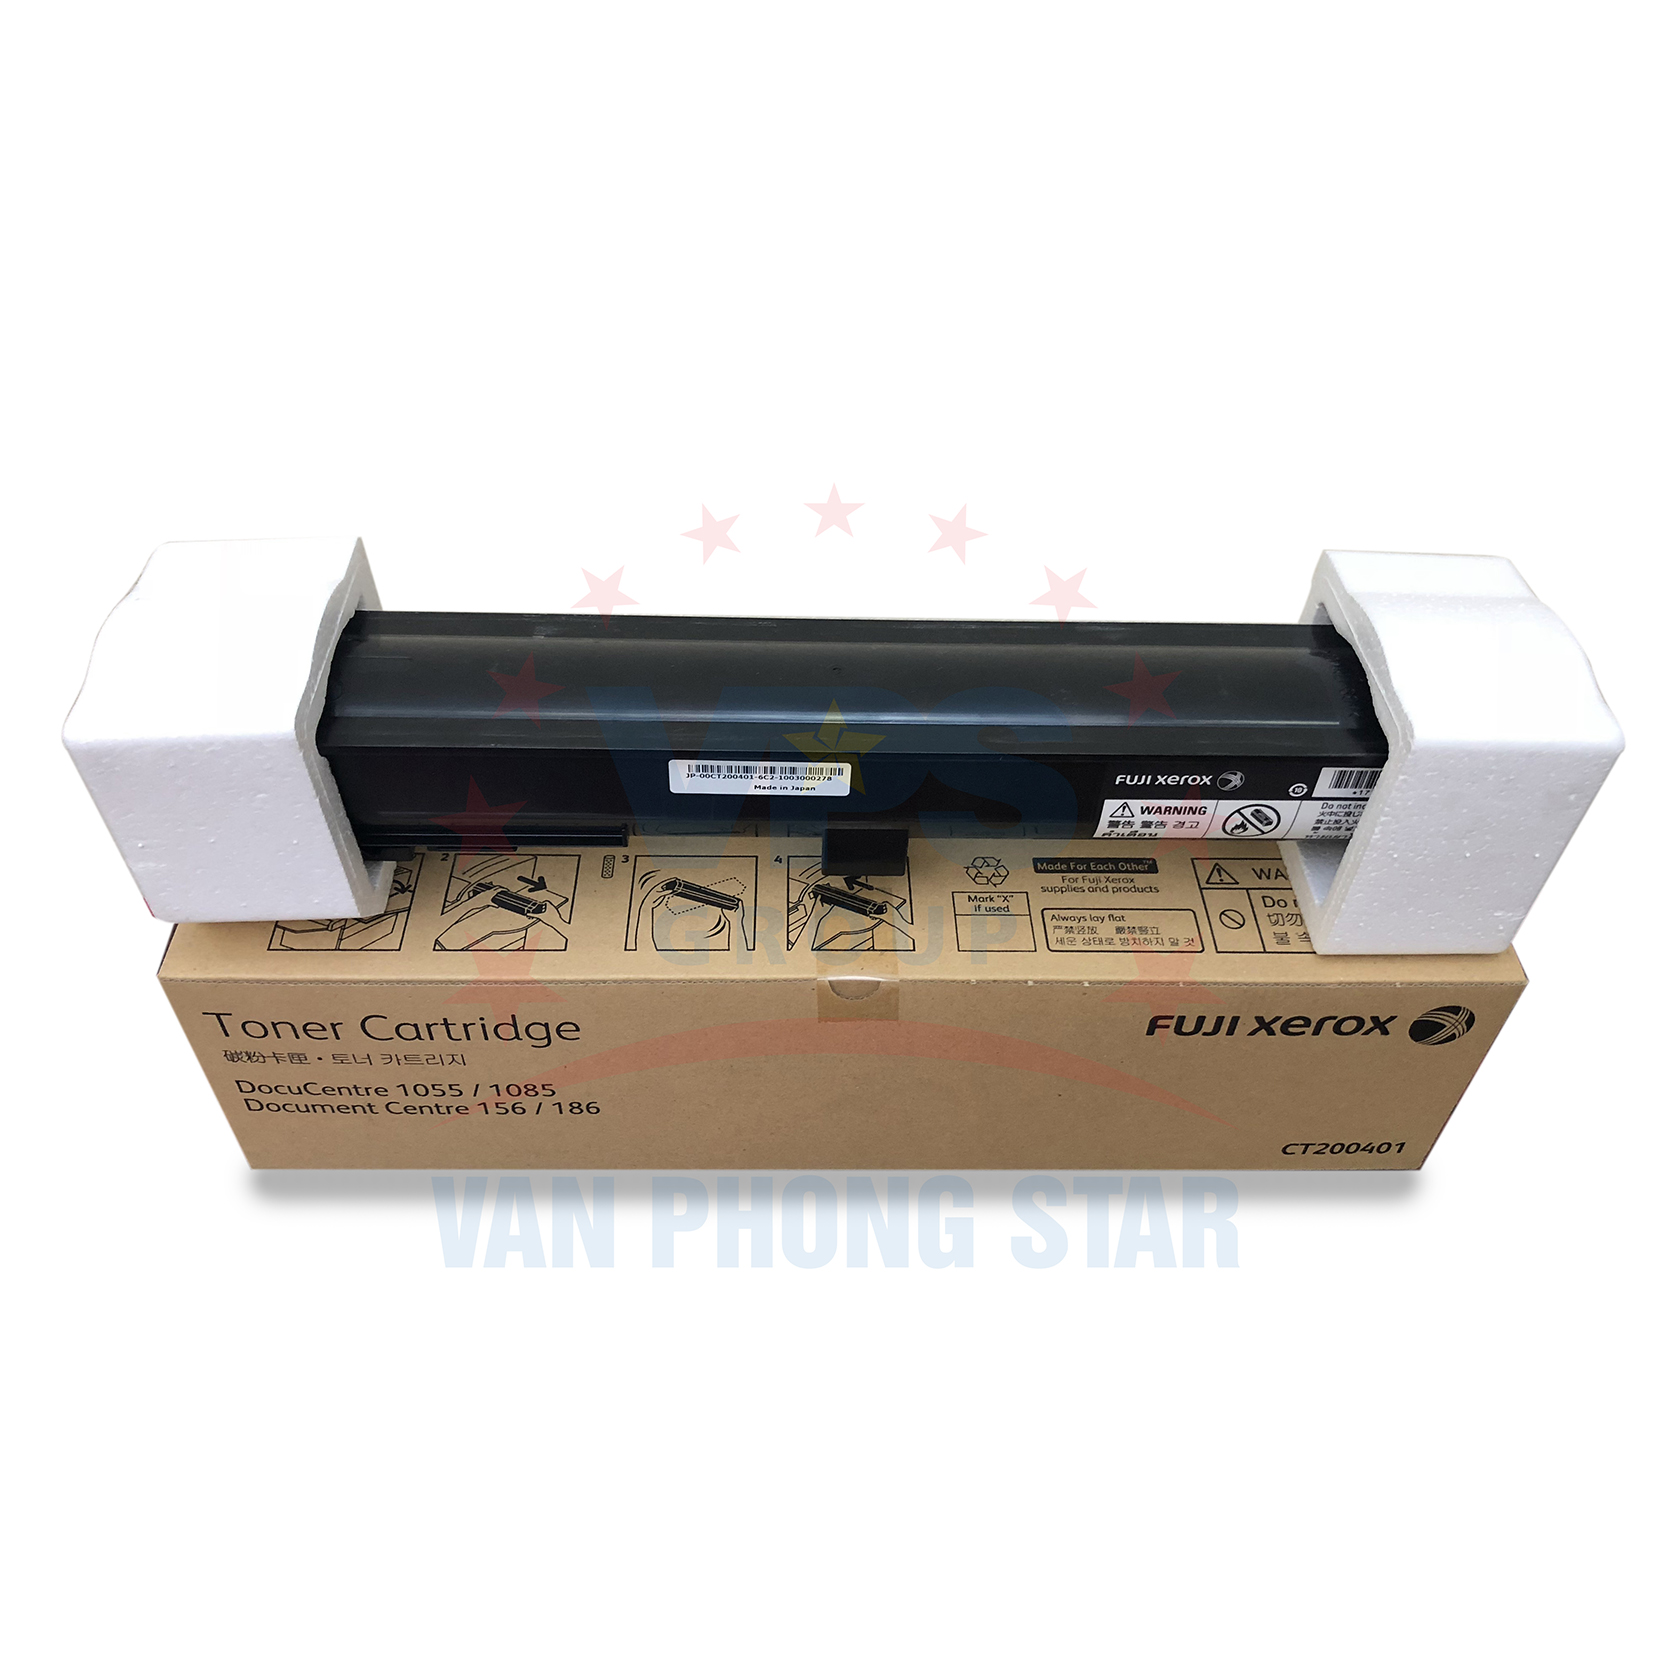 muc-dung-cho-may-xerox-docucentre-1055-1085-toner-cartridge-docucentre-1055-1085